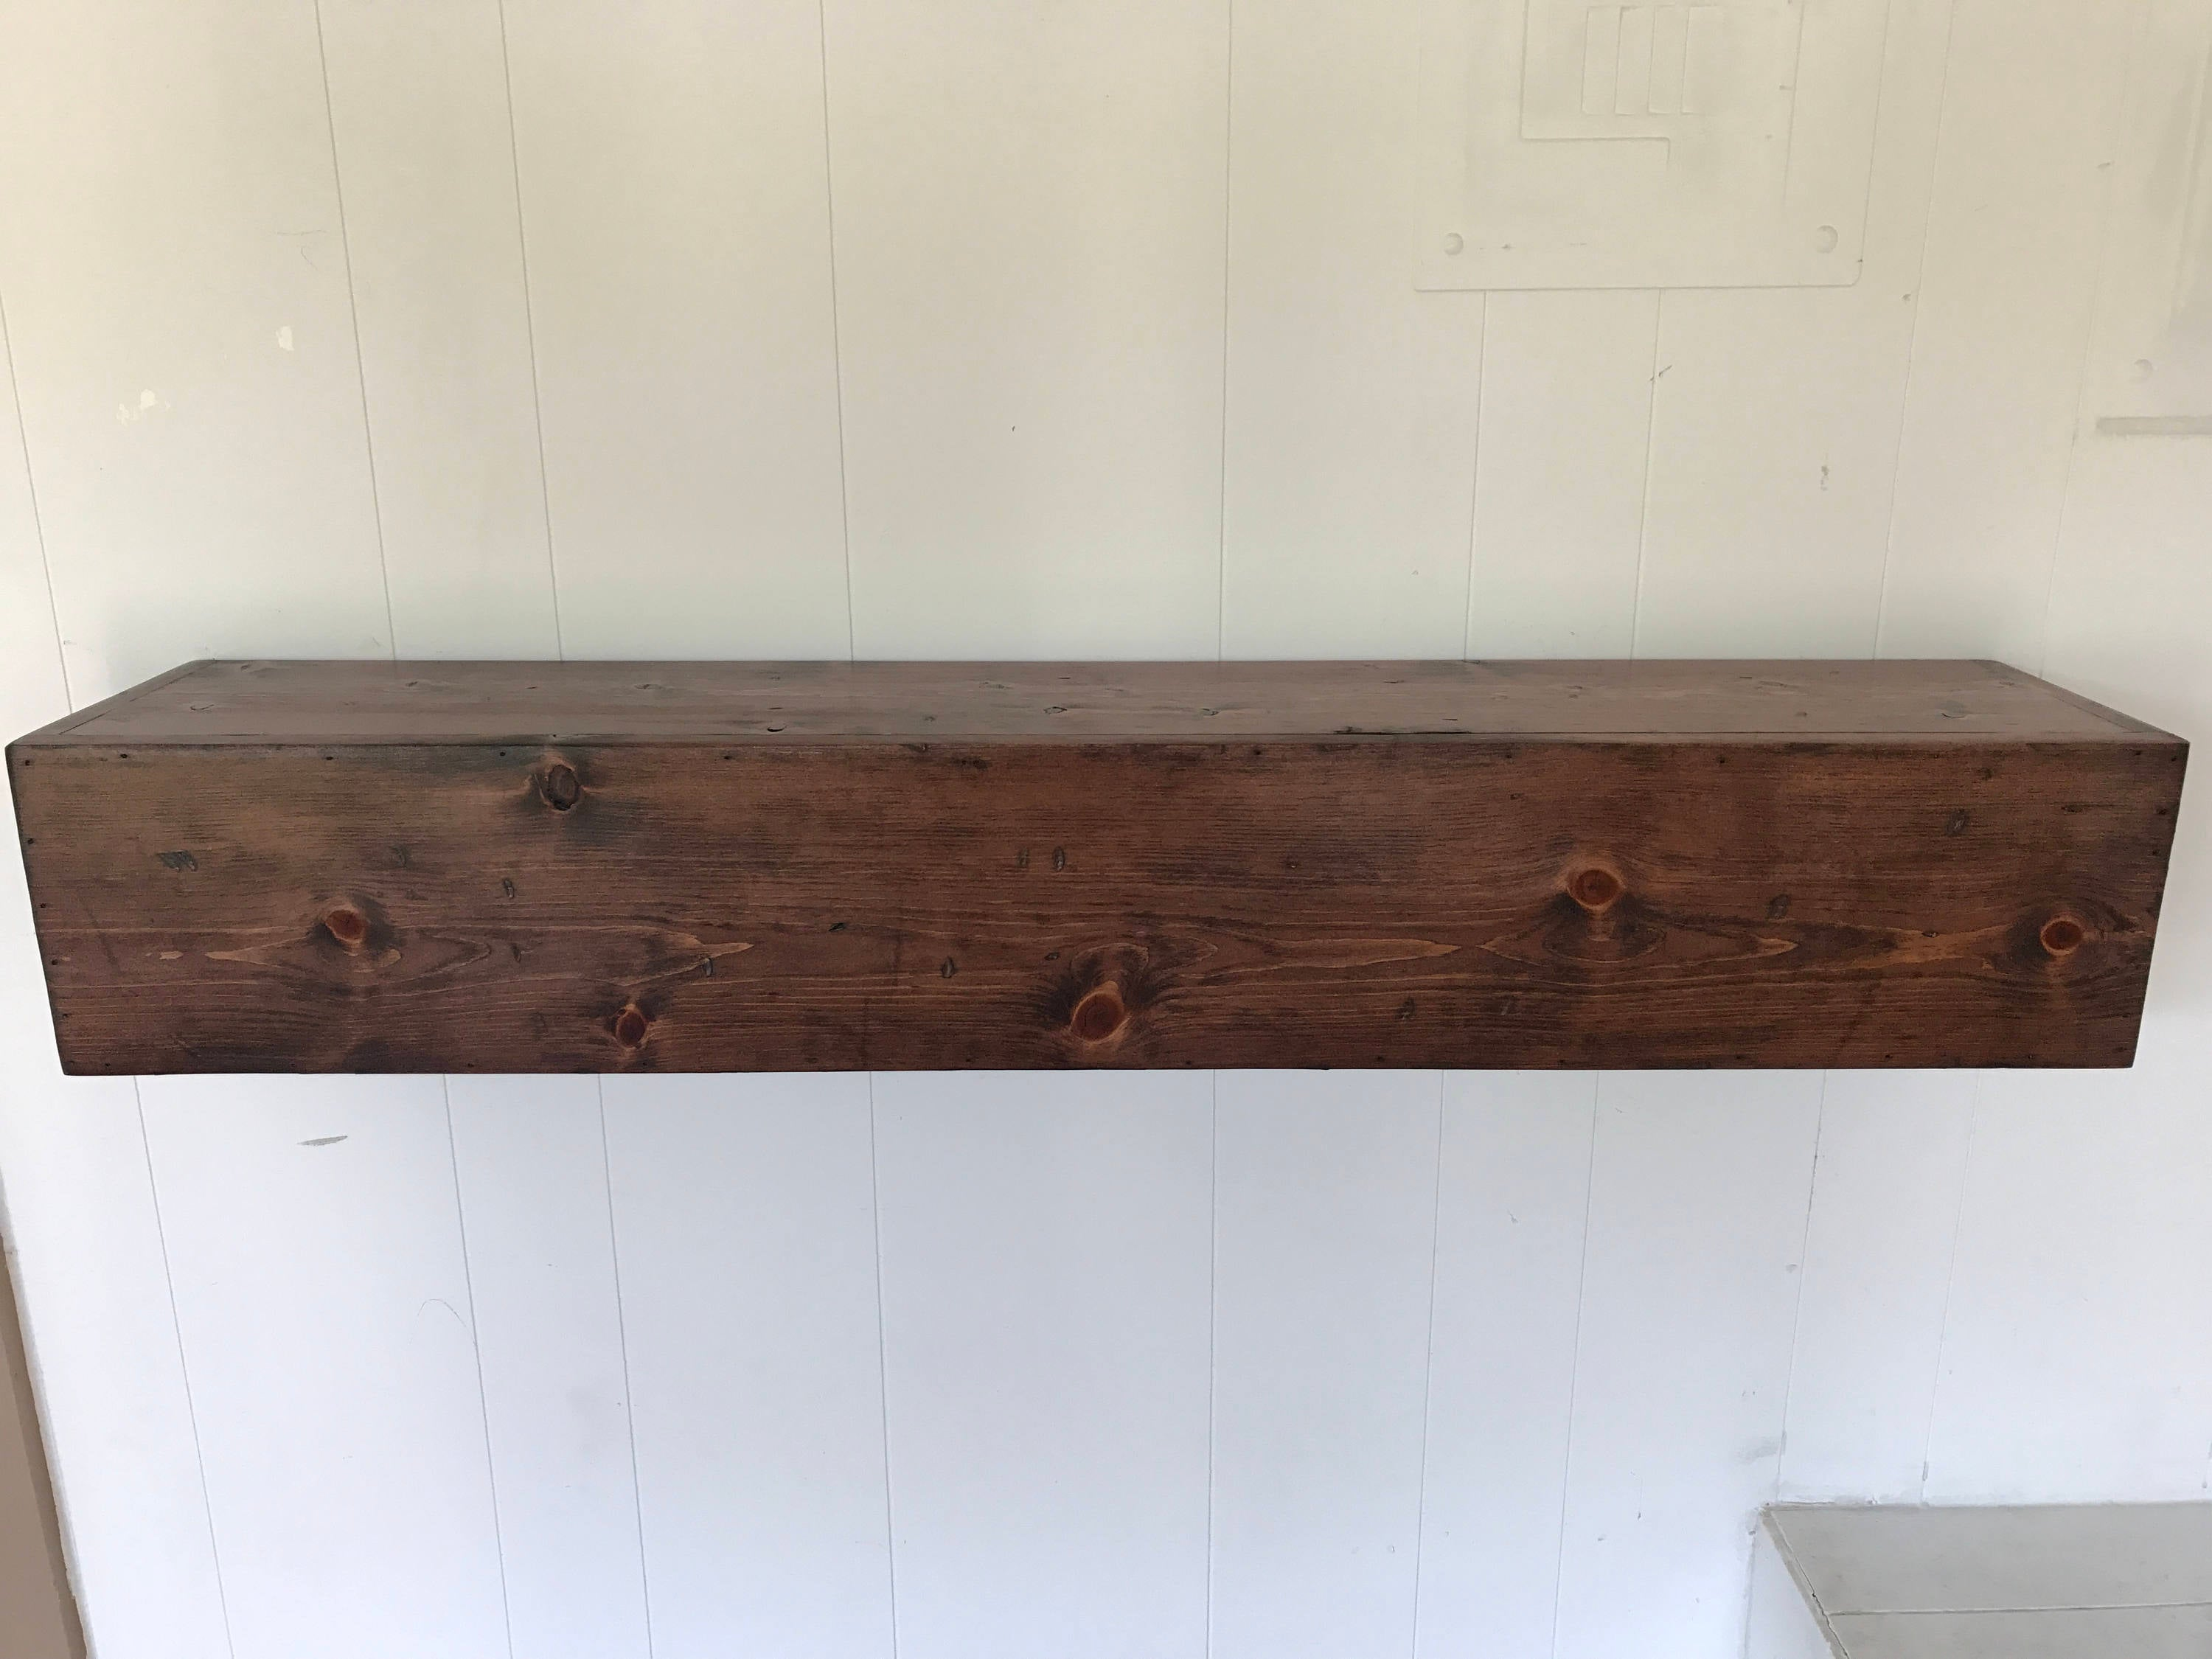 wood floating mantle shelf rustic reclaimed style red fullxfull cavz wooden mantel metal bookcase ikea wall mounted glass corner design your own shelving unit hall tree standing